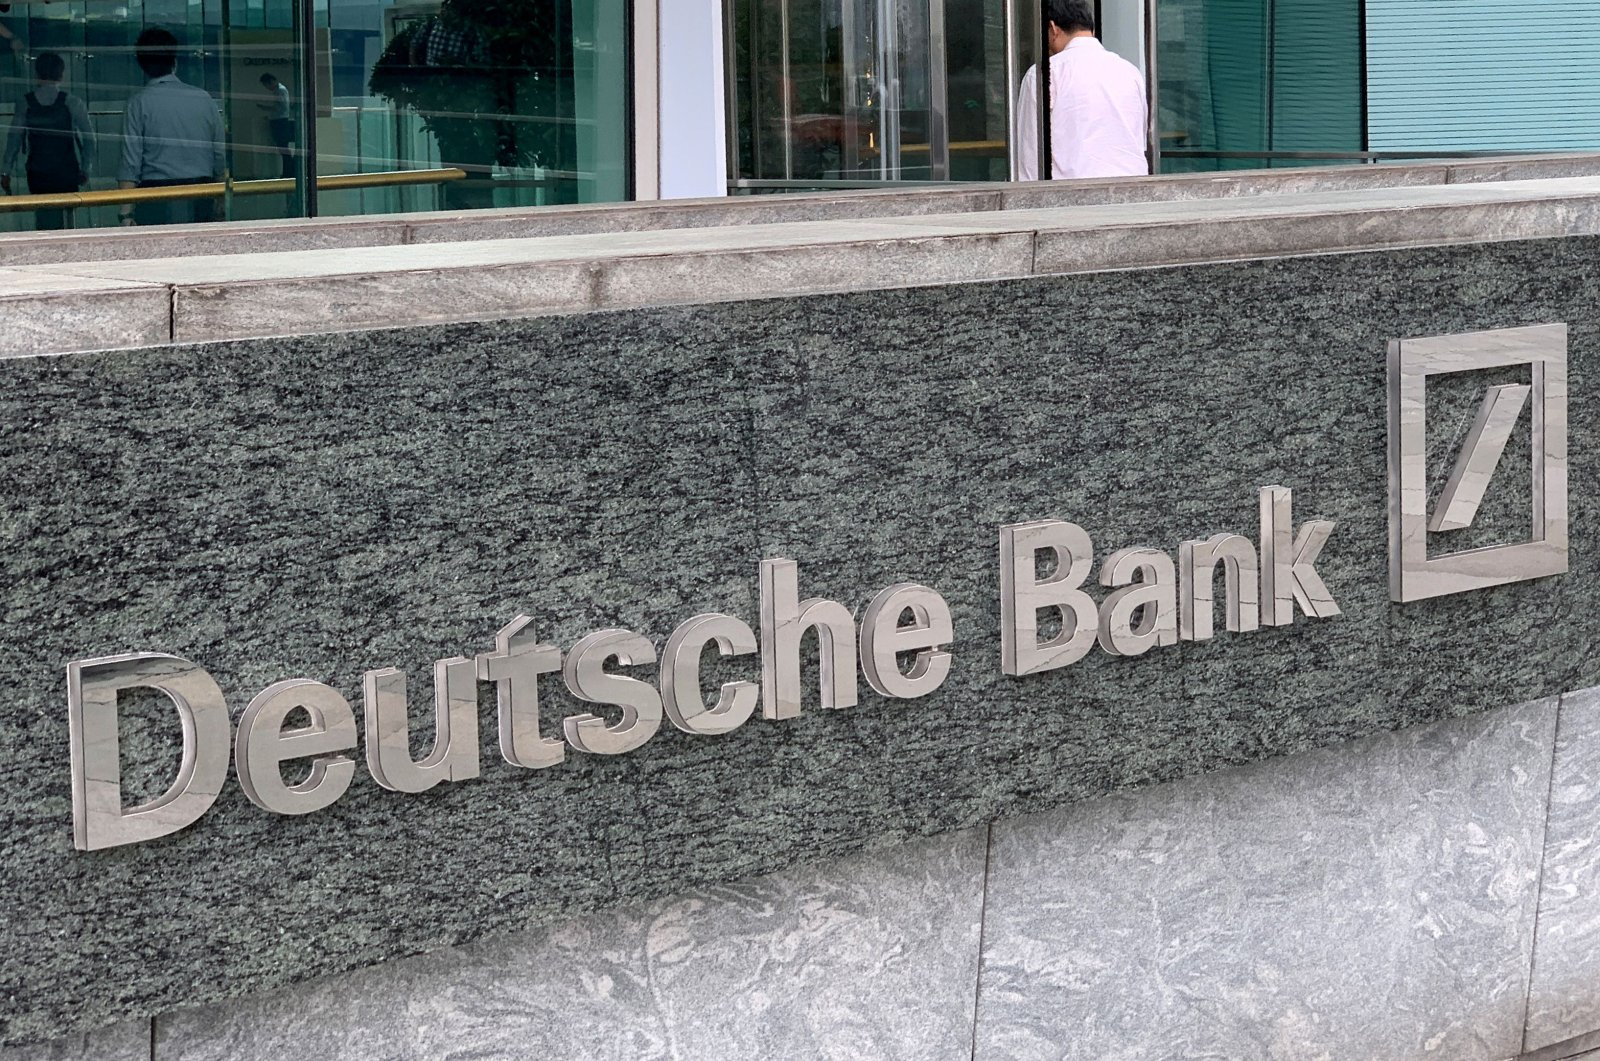 The logo of Deutsche bank is seen in Hong Kong, China on July 8, 2019. (Reuters Photo)